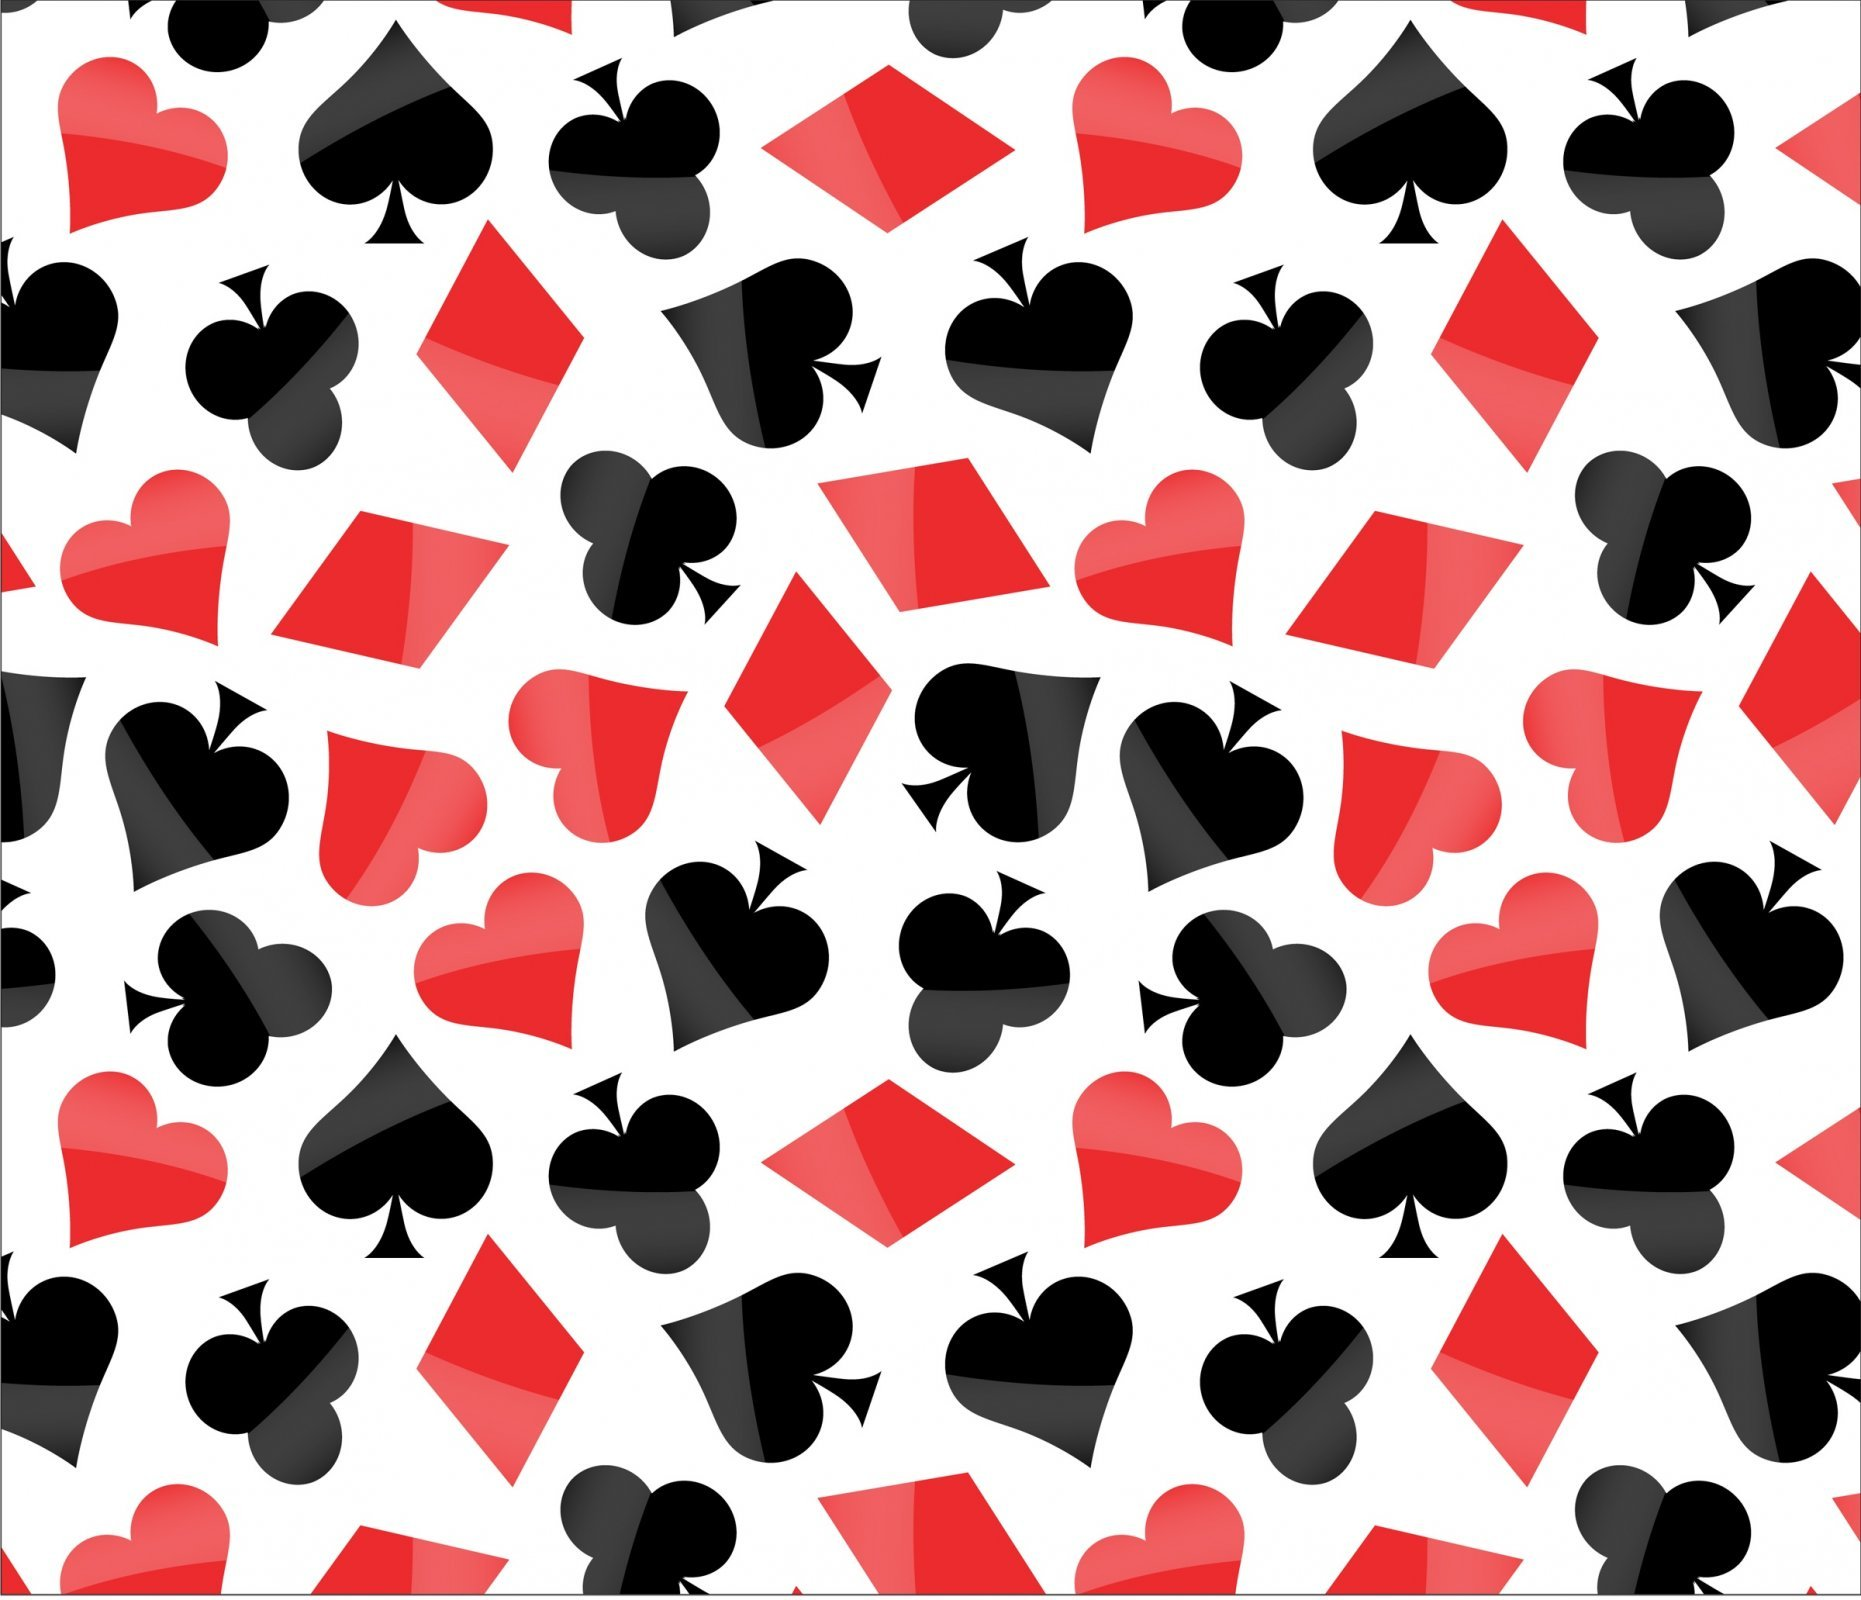 Poker Symbols on White David Textiles Exclusive Digital Prints Fabric by the Yard